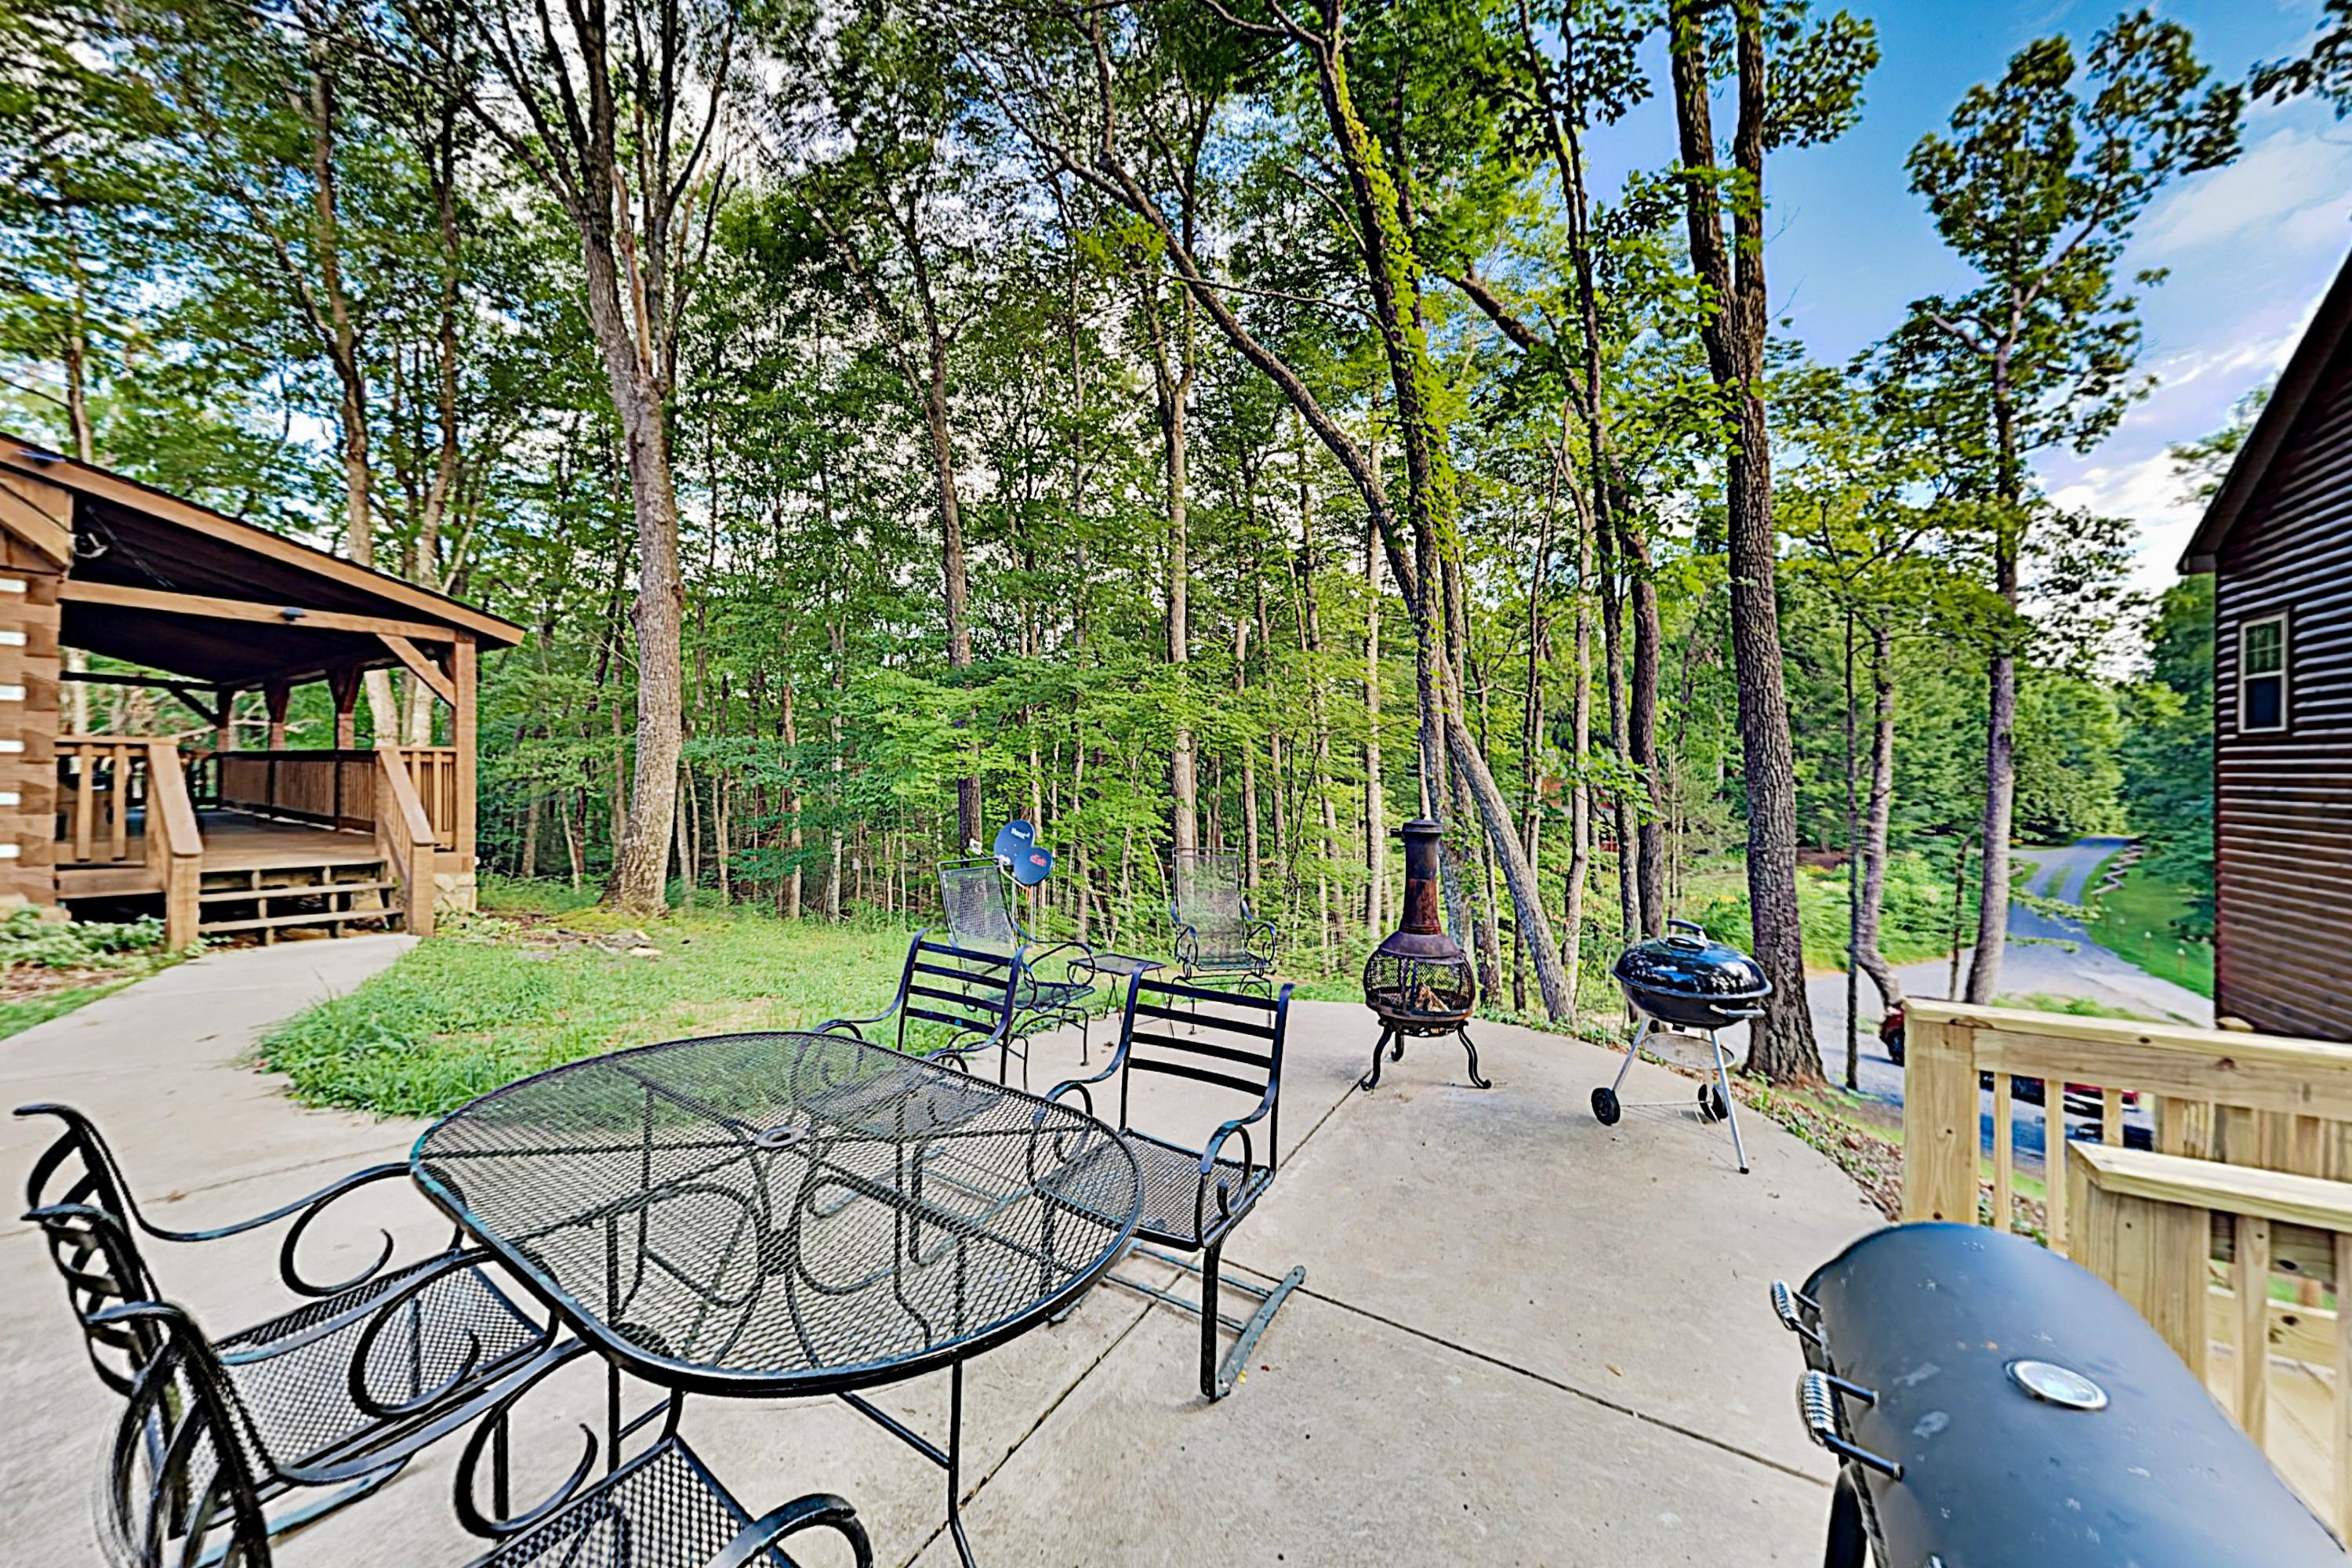 Property Image 2 - Serenity Ridge: Deluxe Cabin w/ Hot Tub & Pool Table